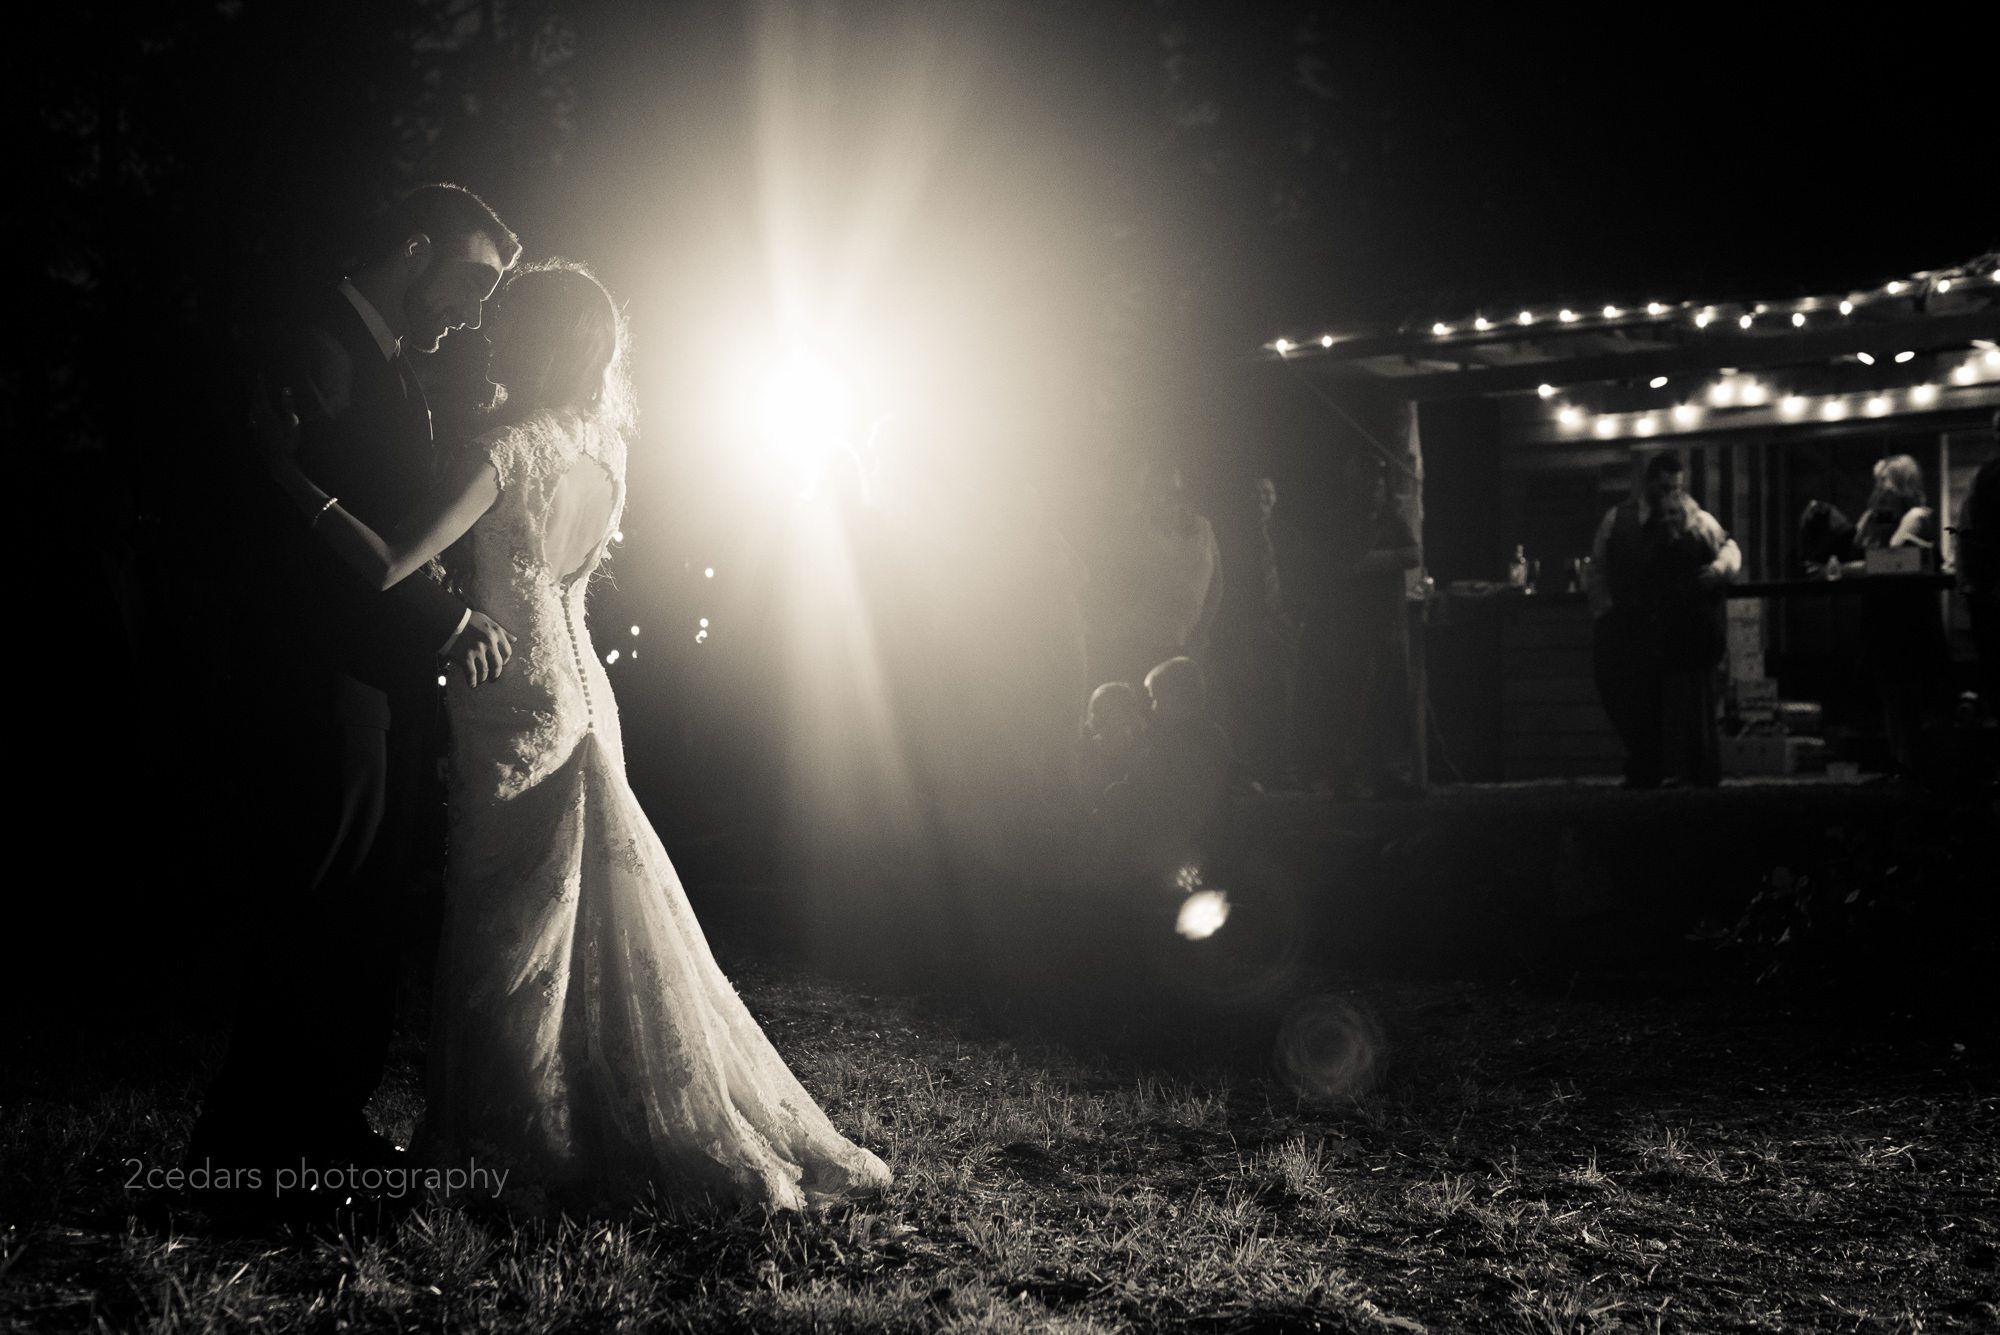 Bride and groom dancing at an outdoor Puget Sound wedding with backlight in black and white